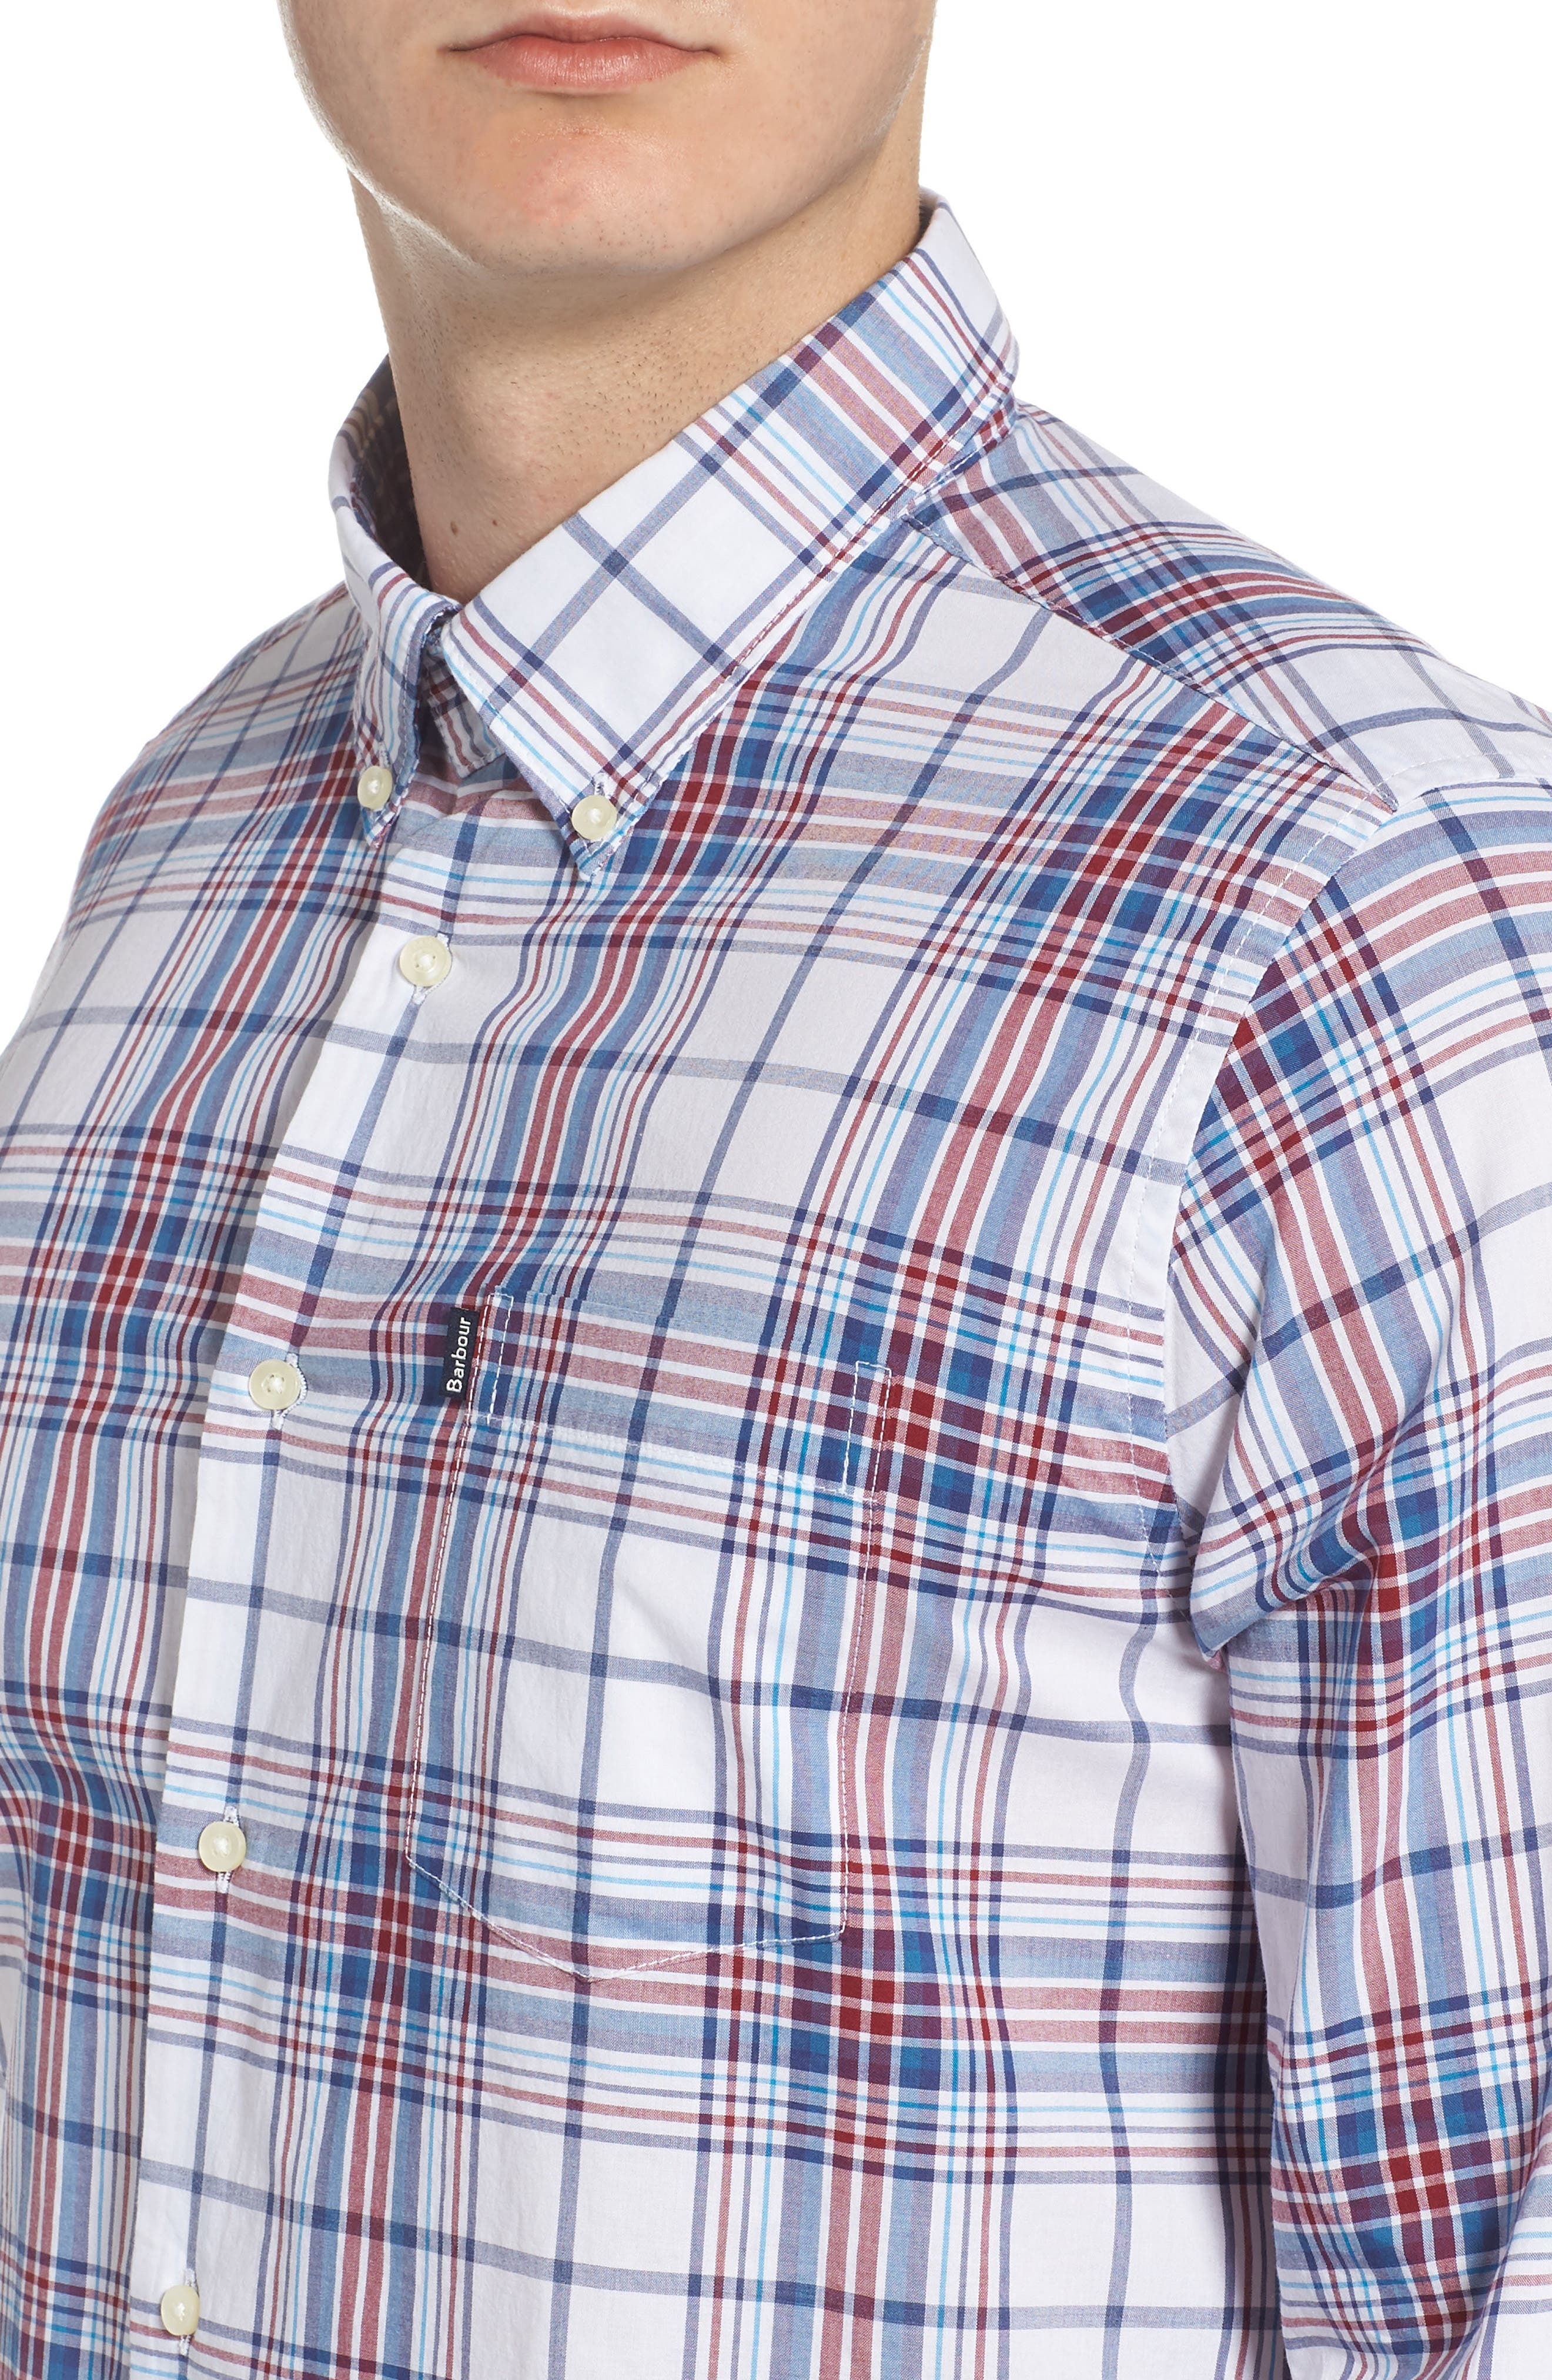 Christopher Tailored Fit Plaid Sport Shirt,                             Alternate thumbnail 2, color,                             Biking Red